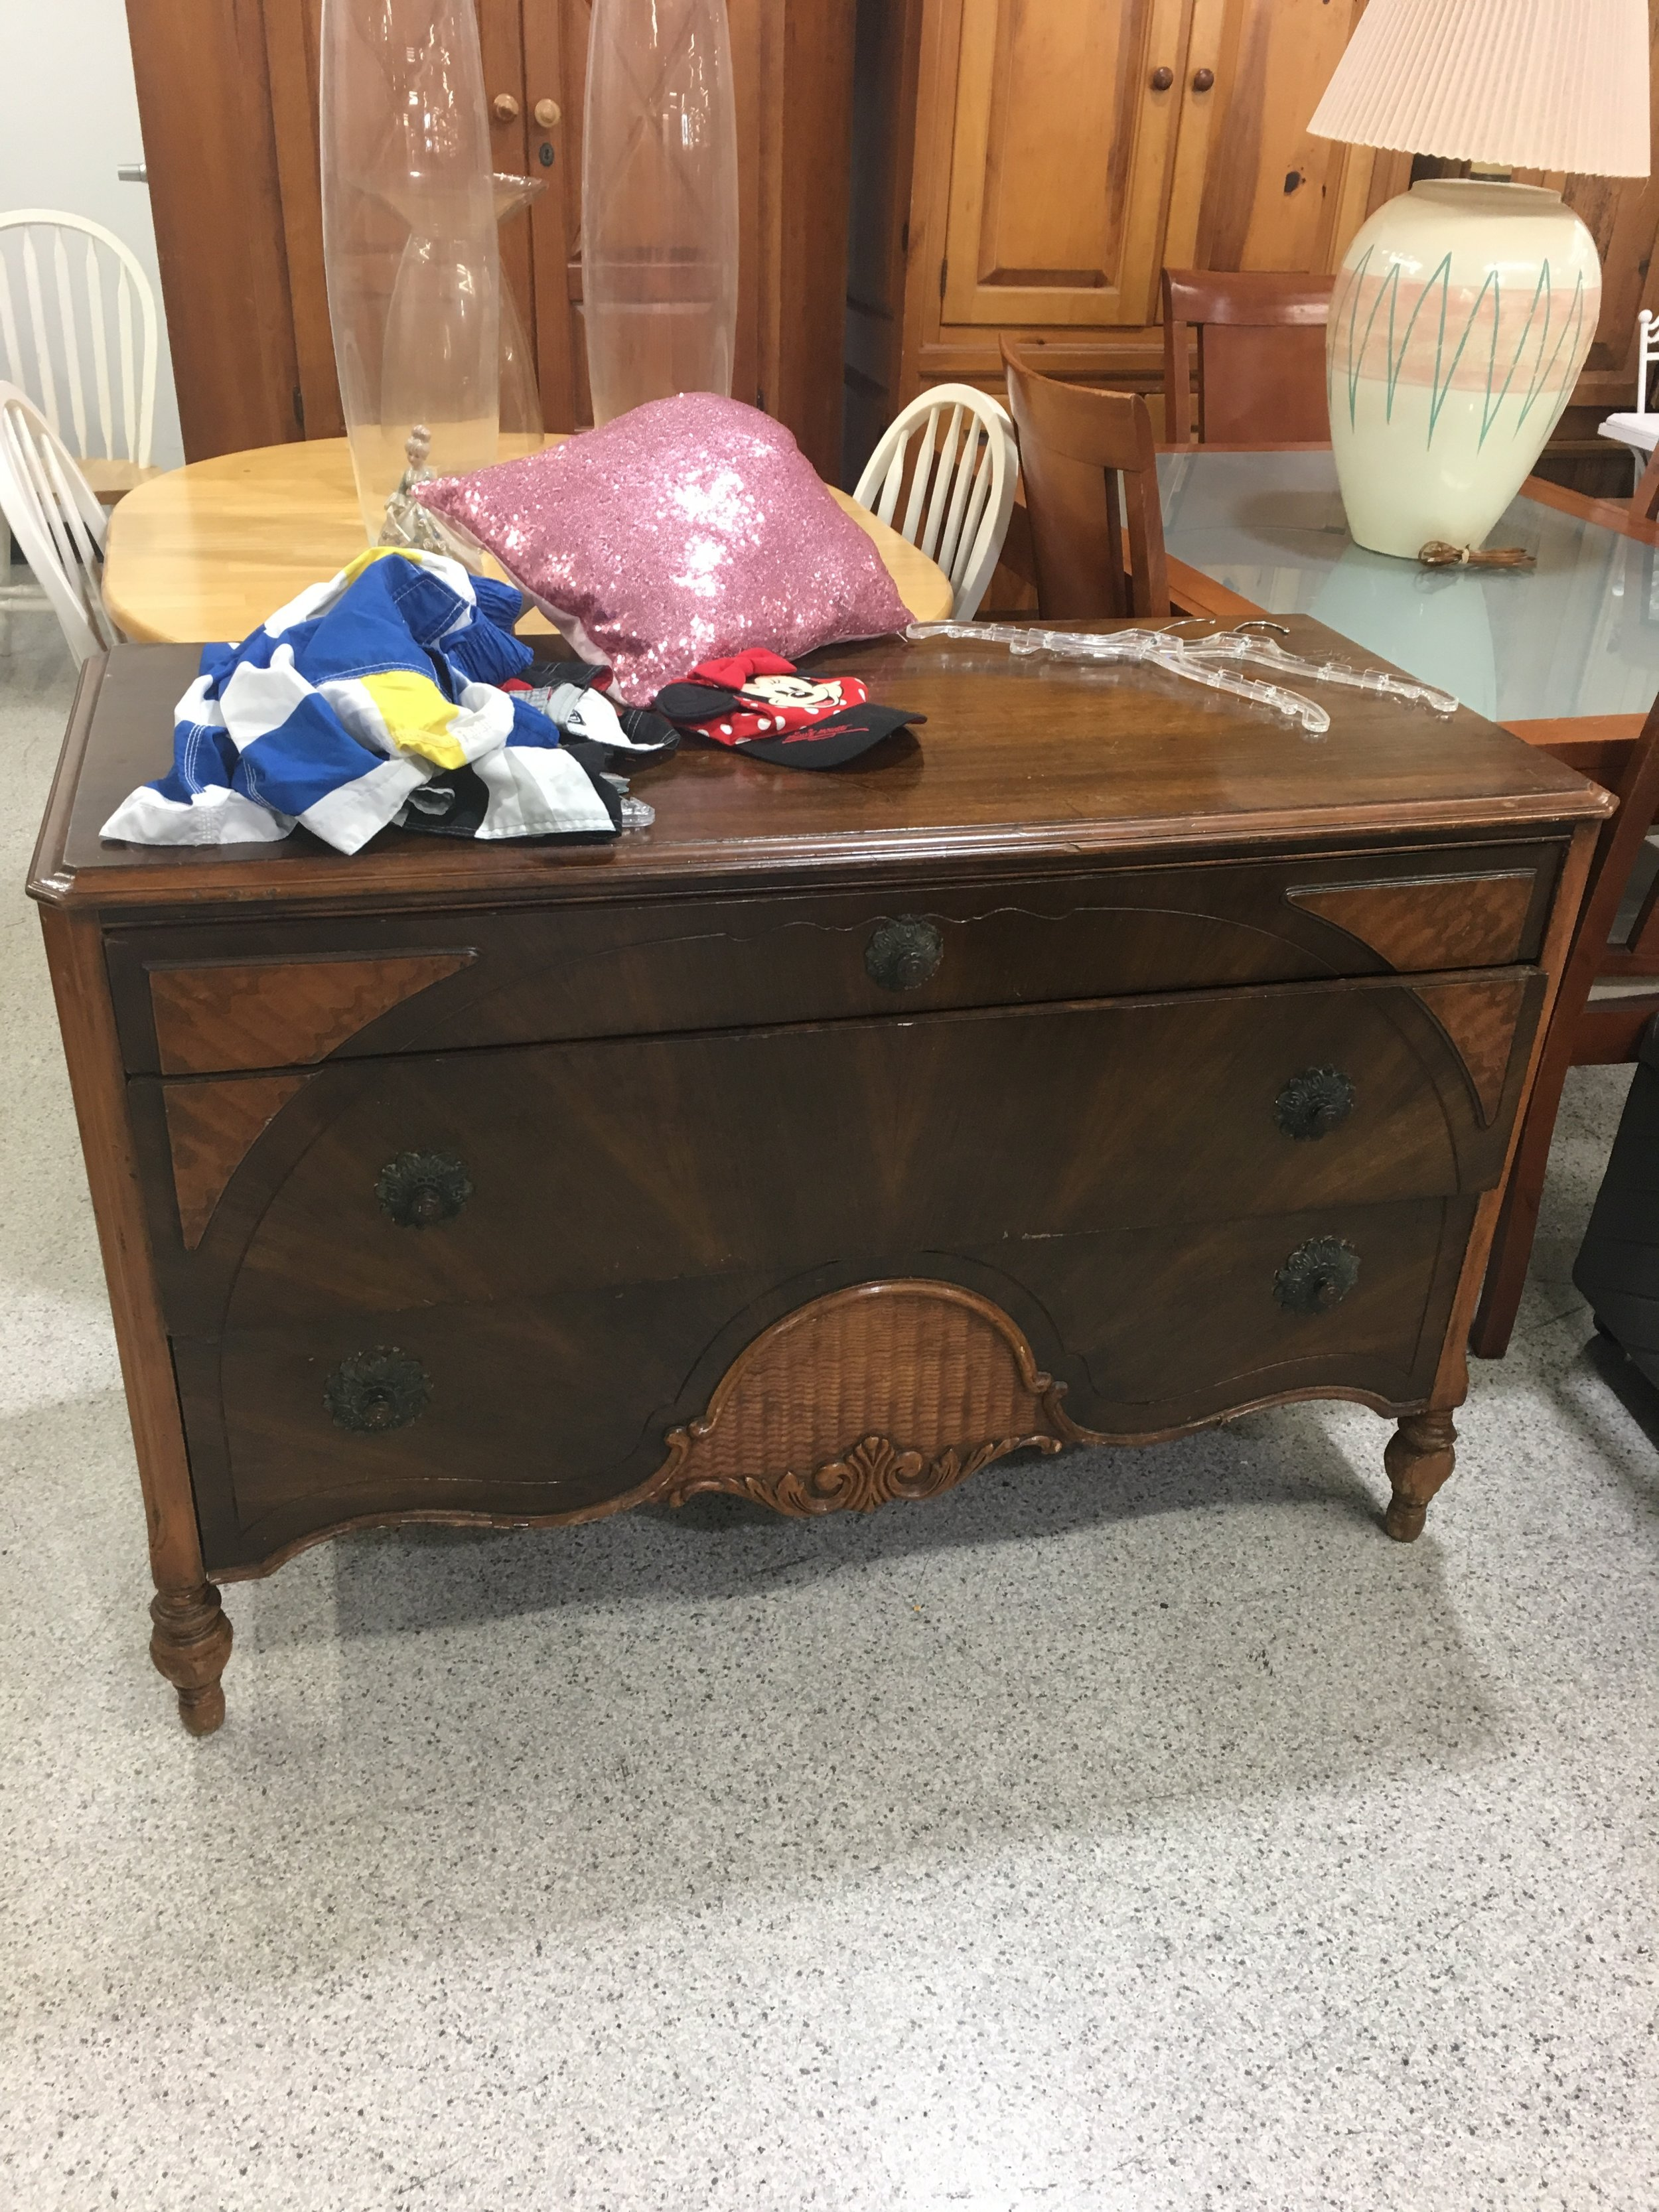 Almost bought this dresser from goodwill for $50